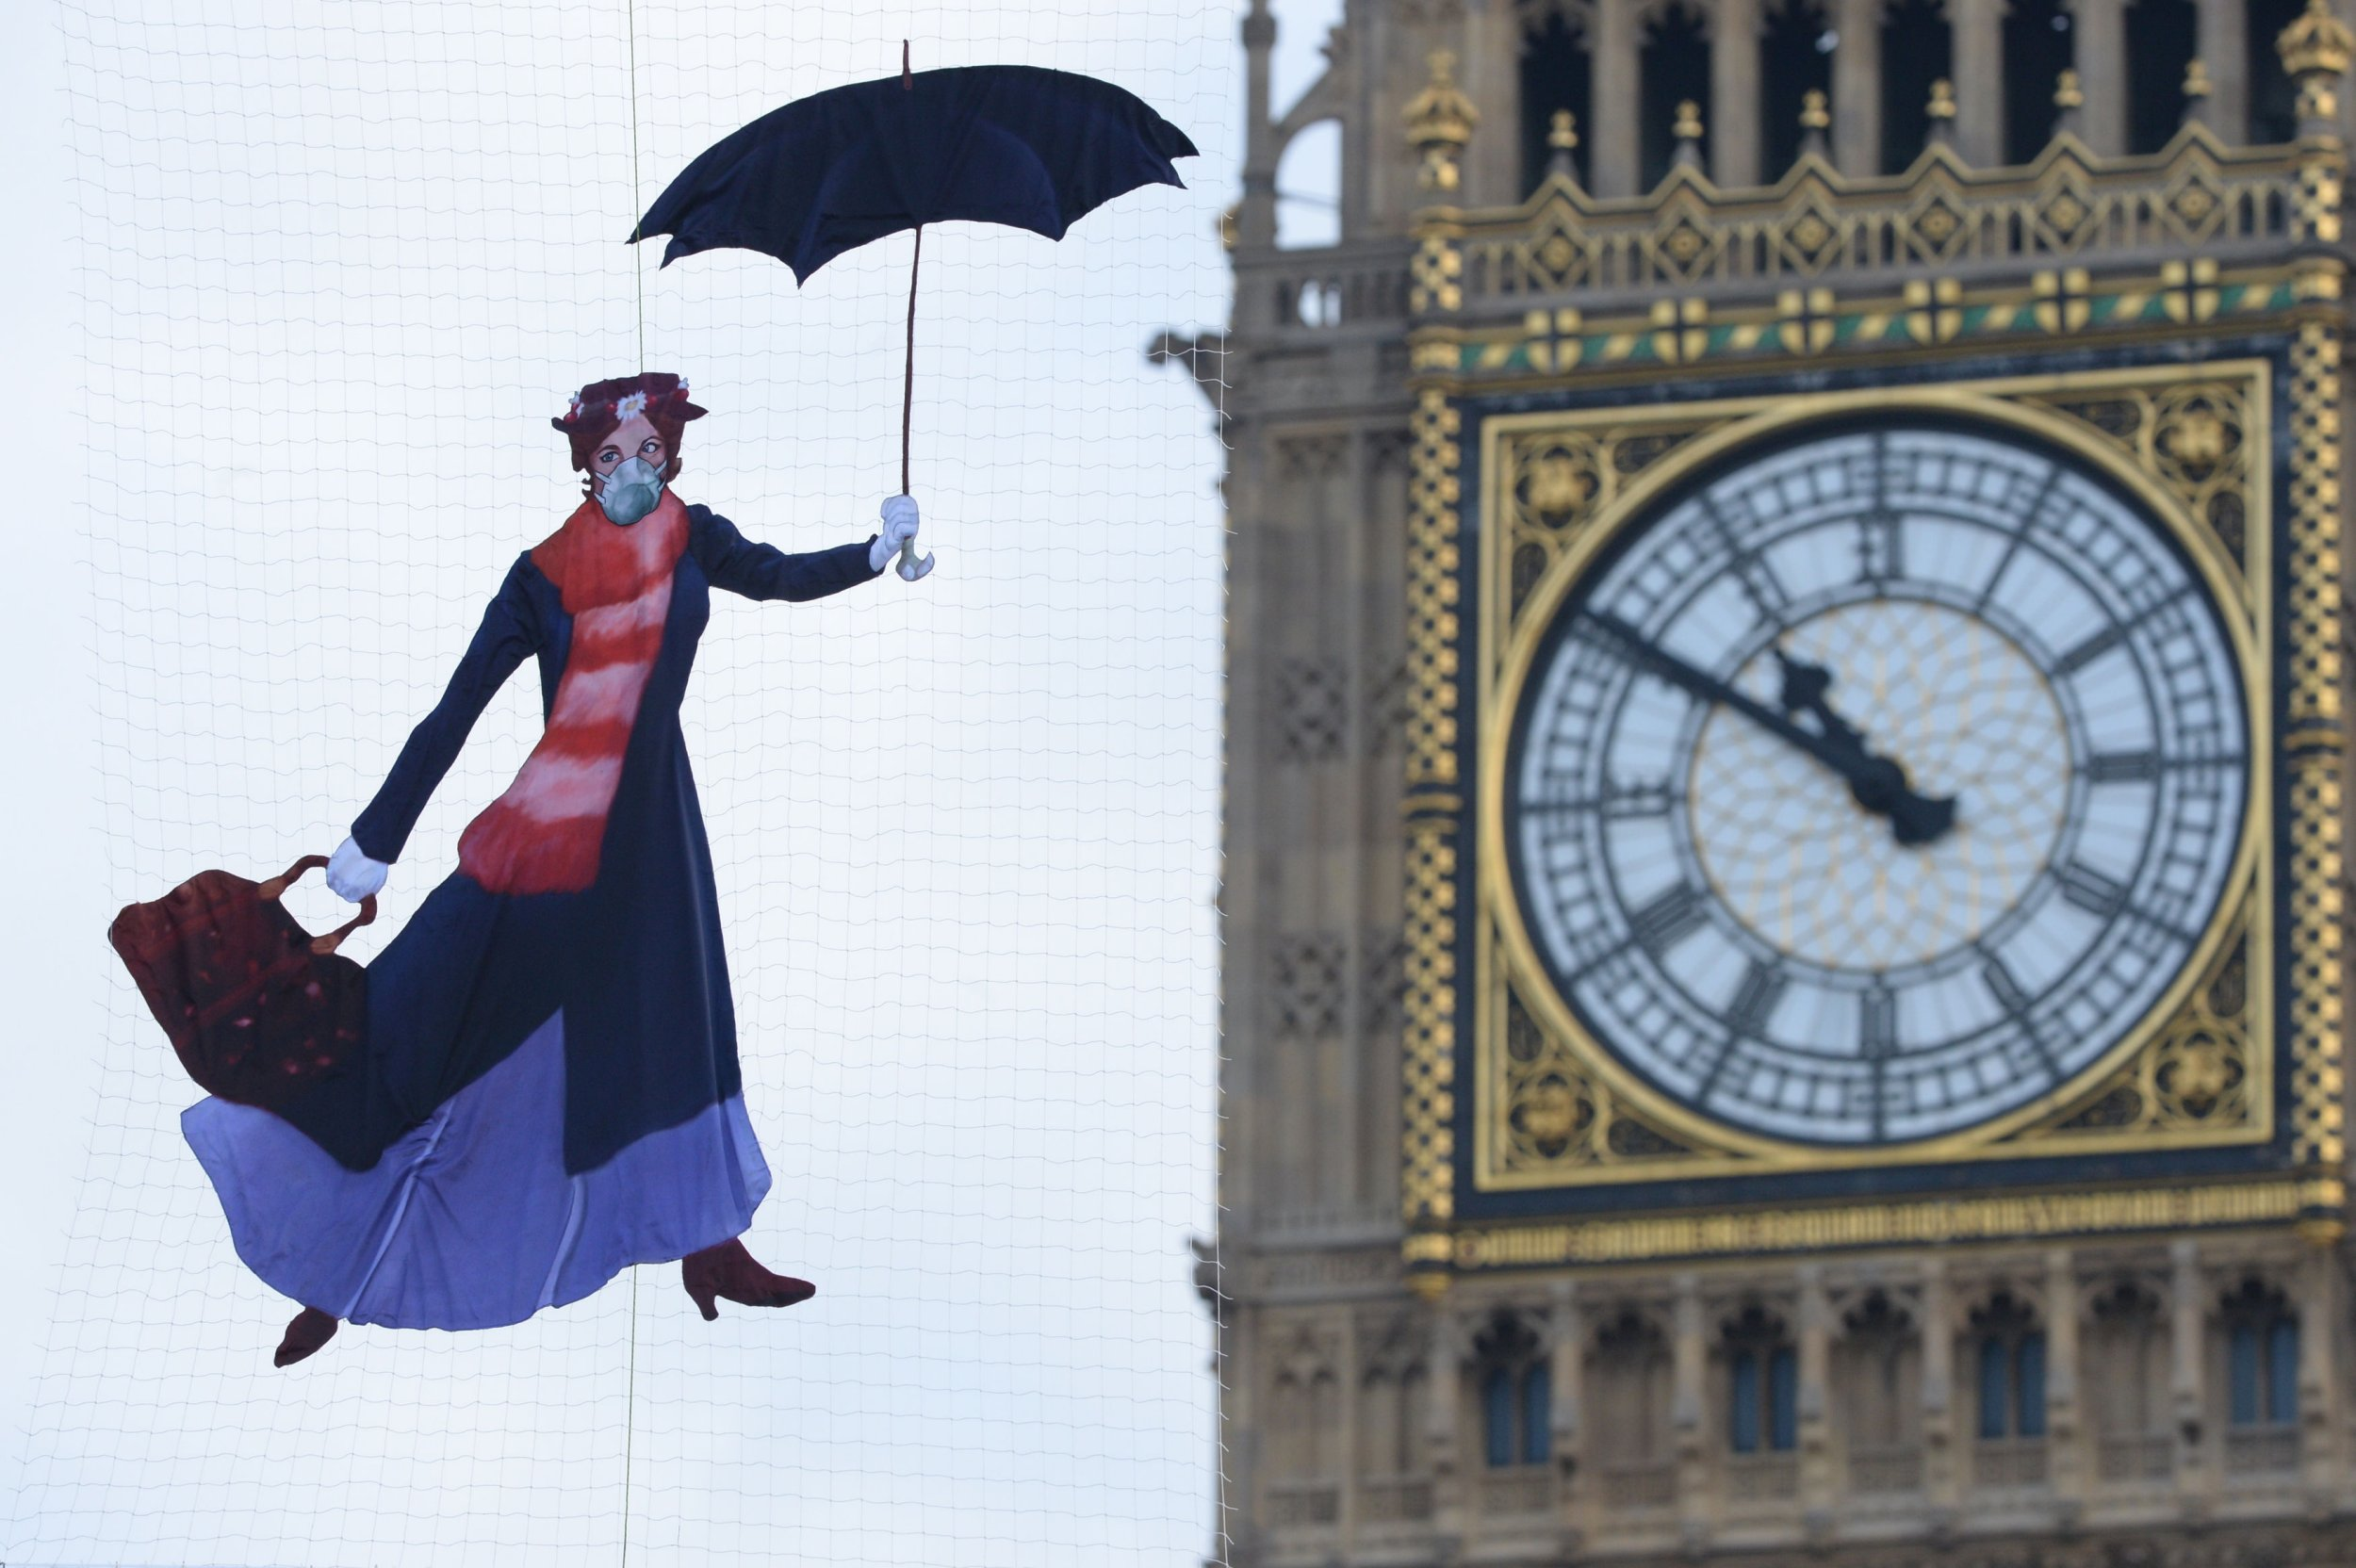 There's a massive Mary Poppins flying around London, here's why